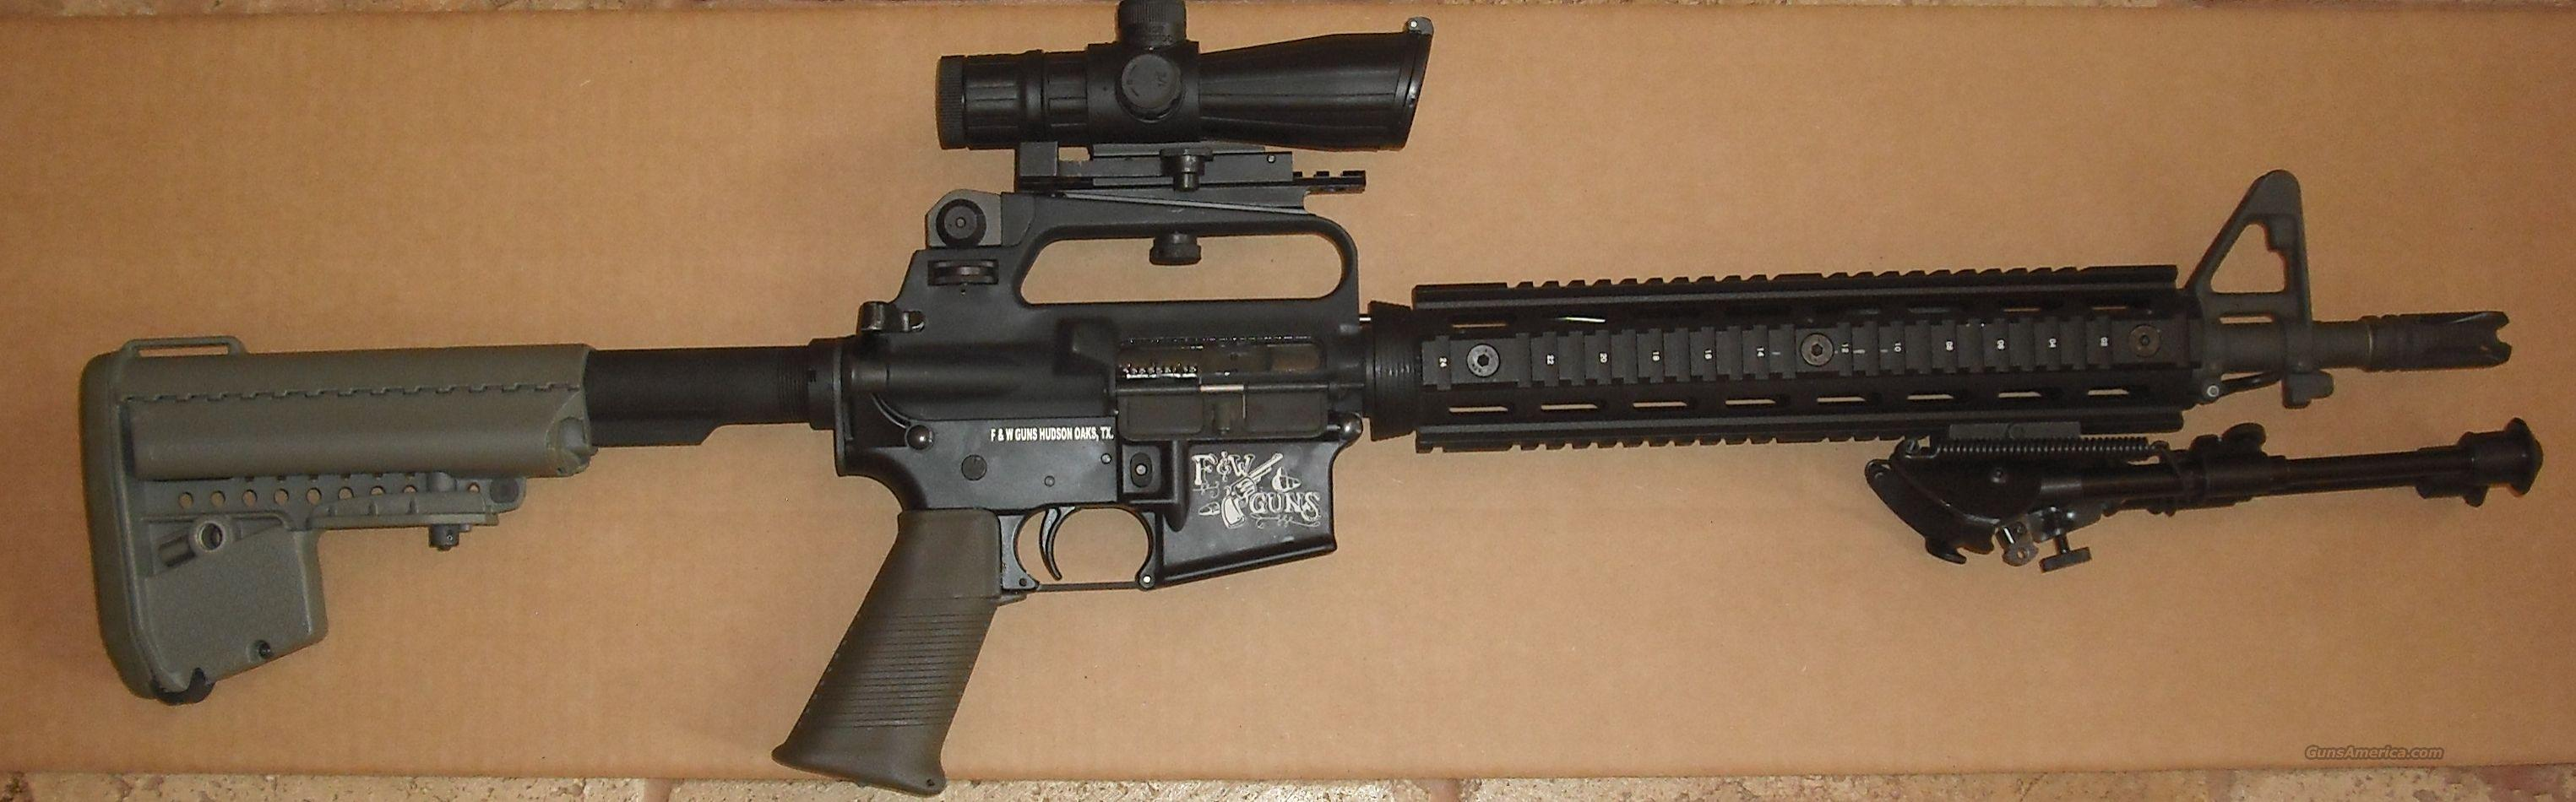 "AR-15 20"" barrel and scope plus more  Guns > Rifles > AR-15 Rifles - Small Manufacturers > Complete Rifle"